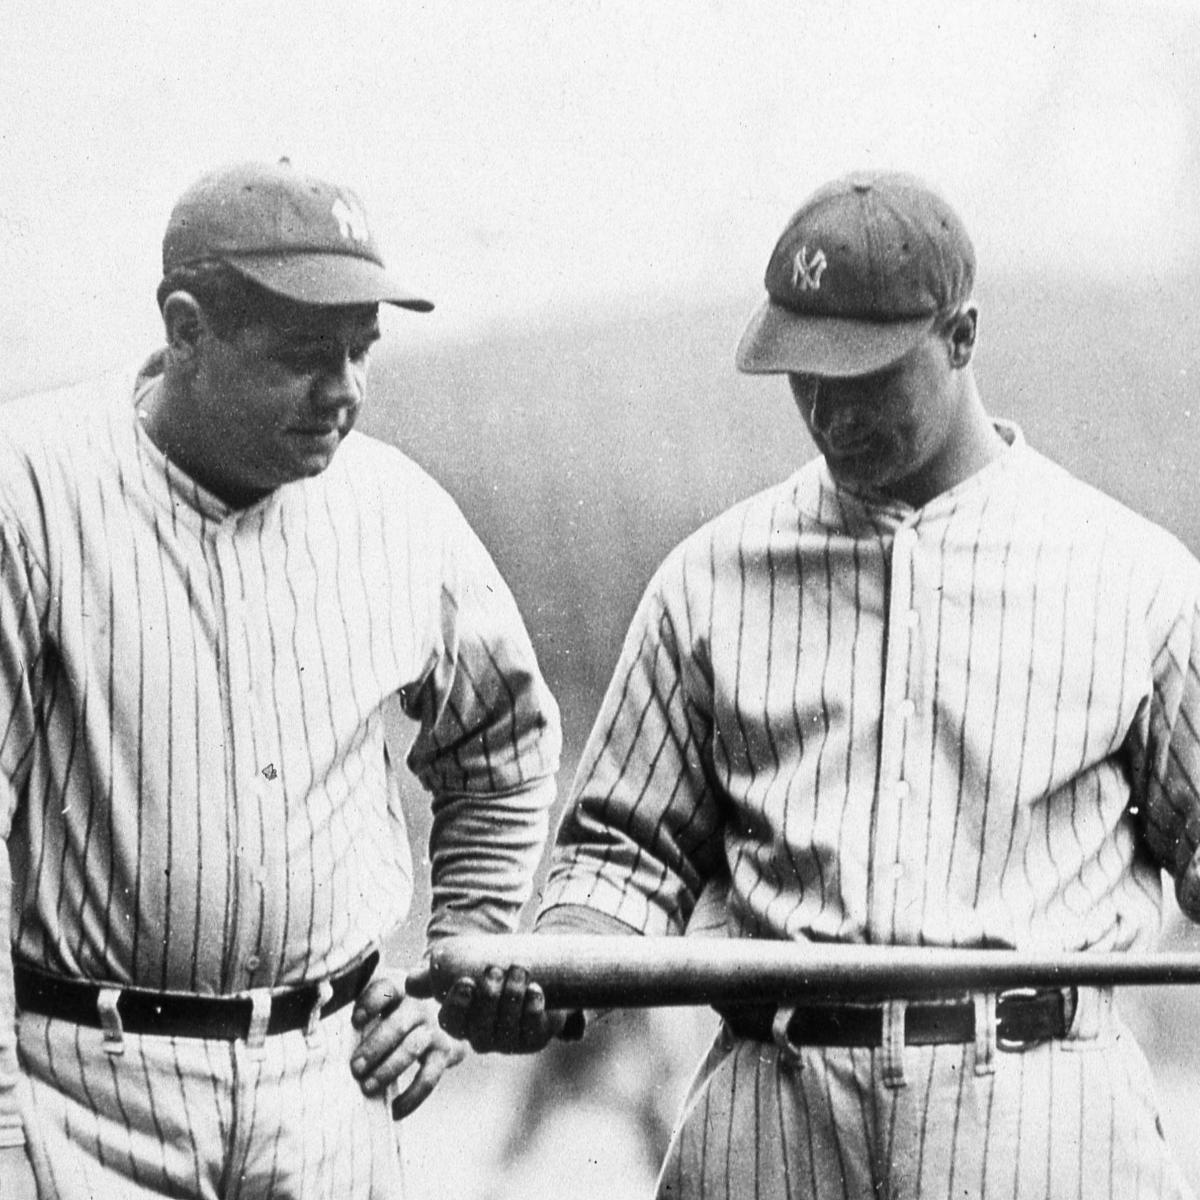 online retailer 5617c 35a7b Ranking the 25 Best Baseball Players of All Time   Bleacher Report   Latest  News, Videos and Highlights